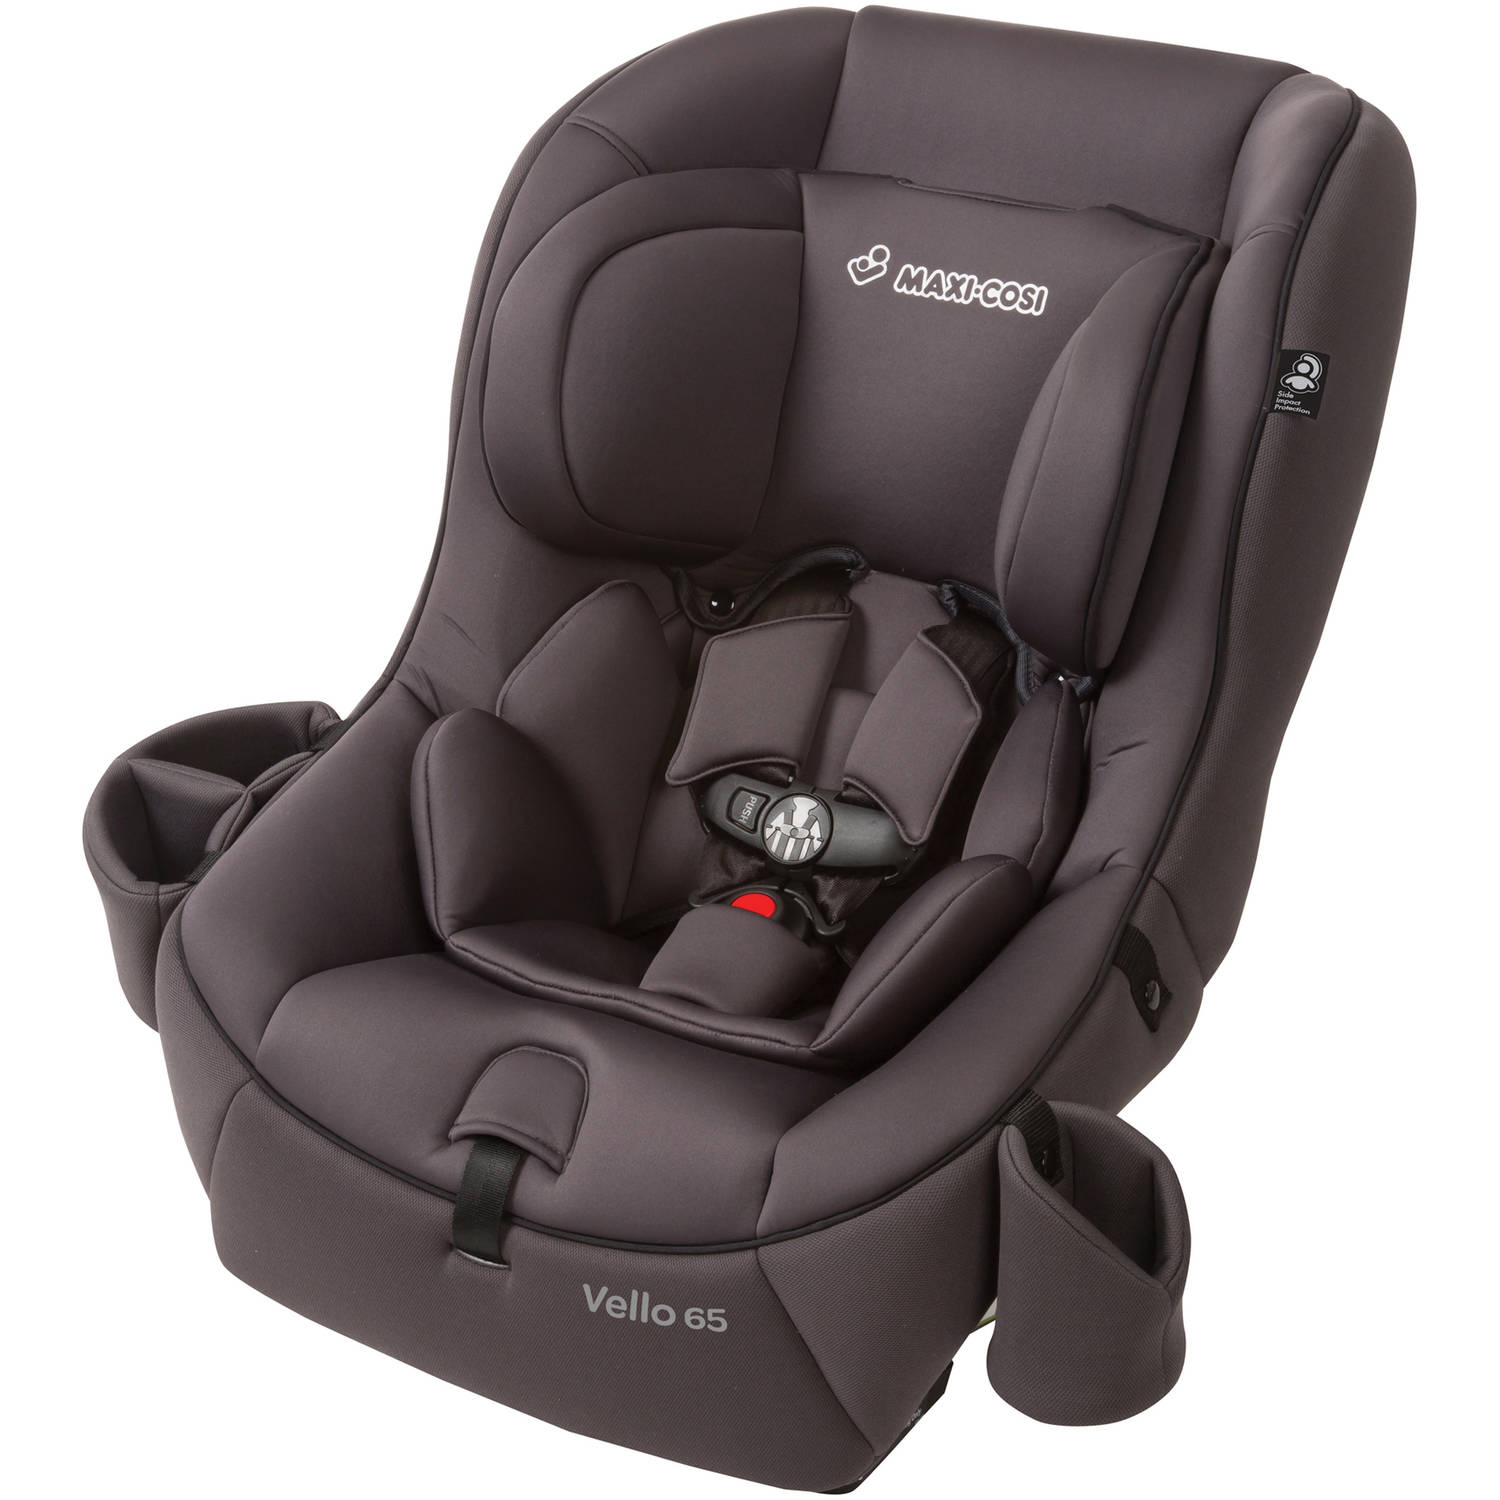 Maxi Cosi Vello 65 Convertible Car Seat, Gray